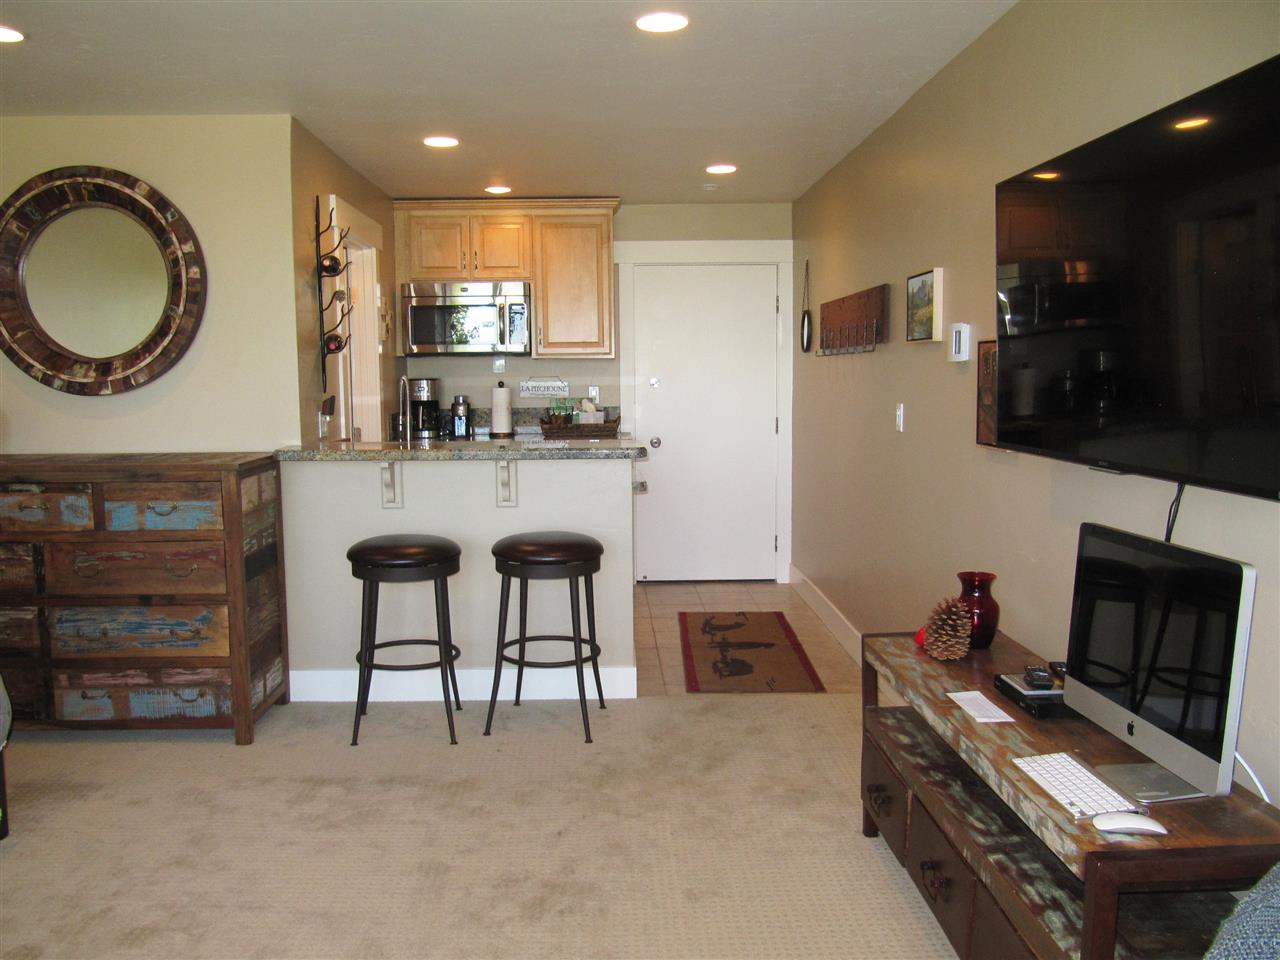 Additional photo for property listing at 11591 Snowpeak Way 11591 Snowpeak Way Truckee, California 96161 United States